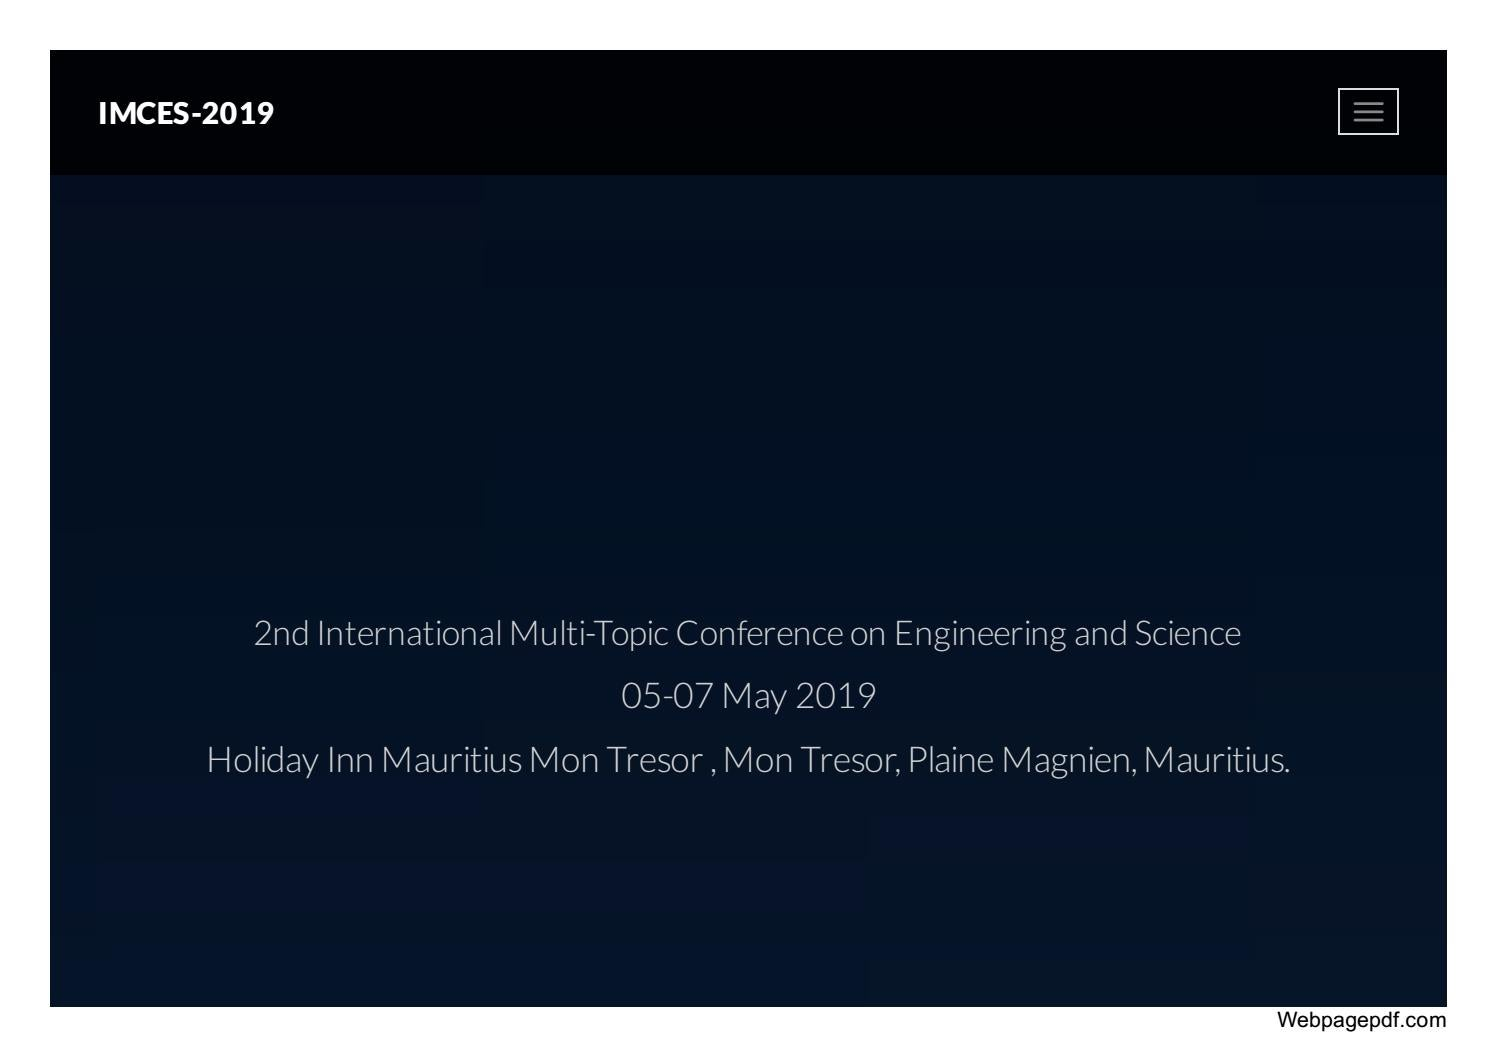 2nd International Multi-Topic Conference on Engineering and